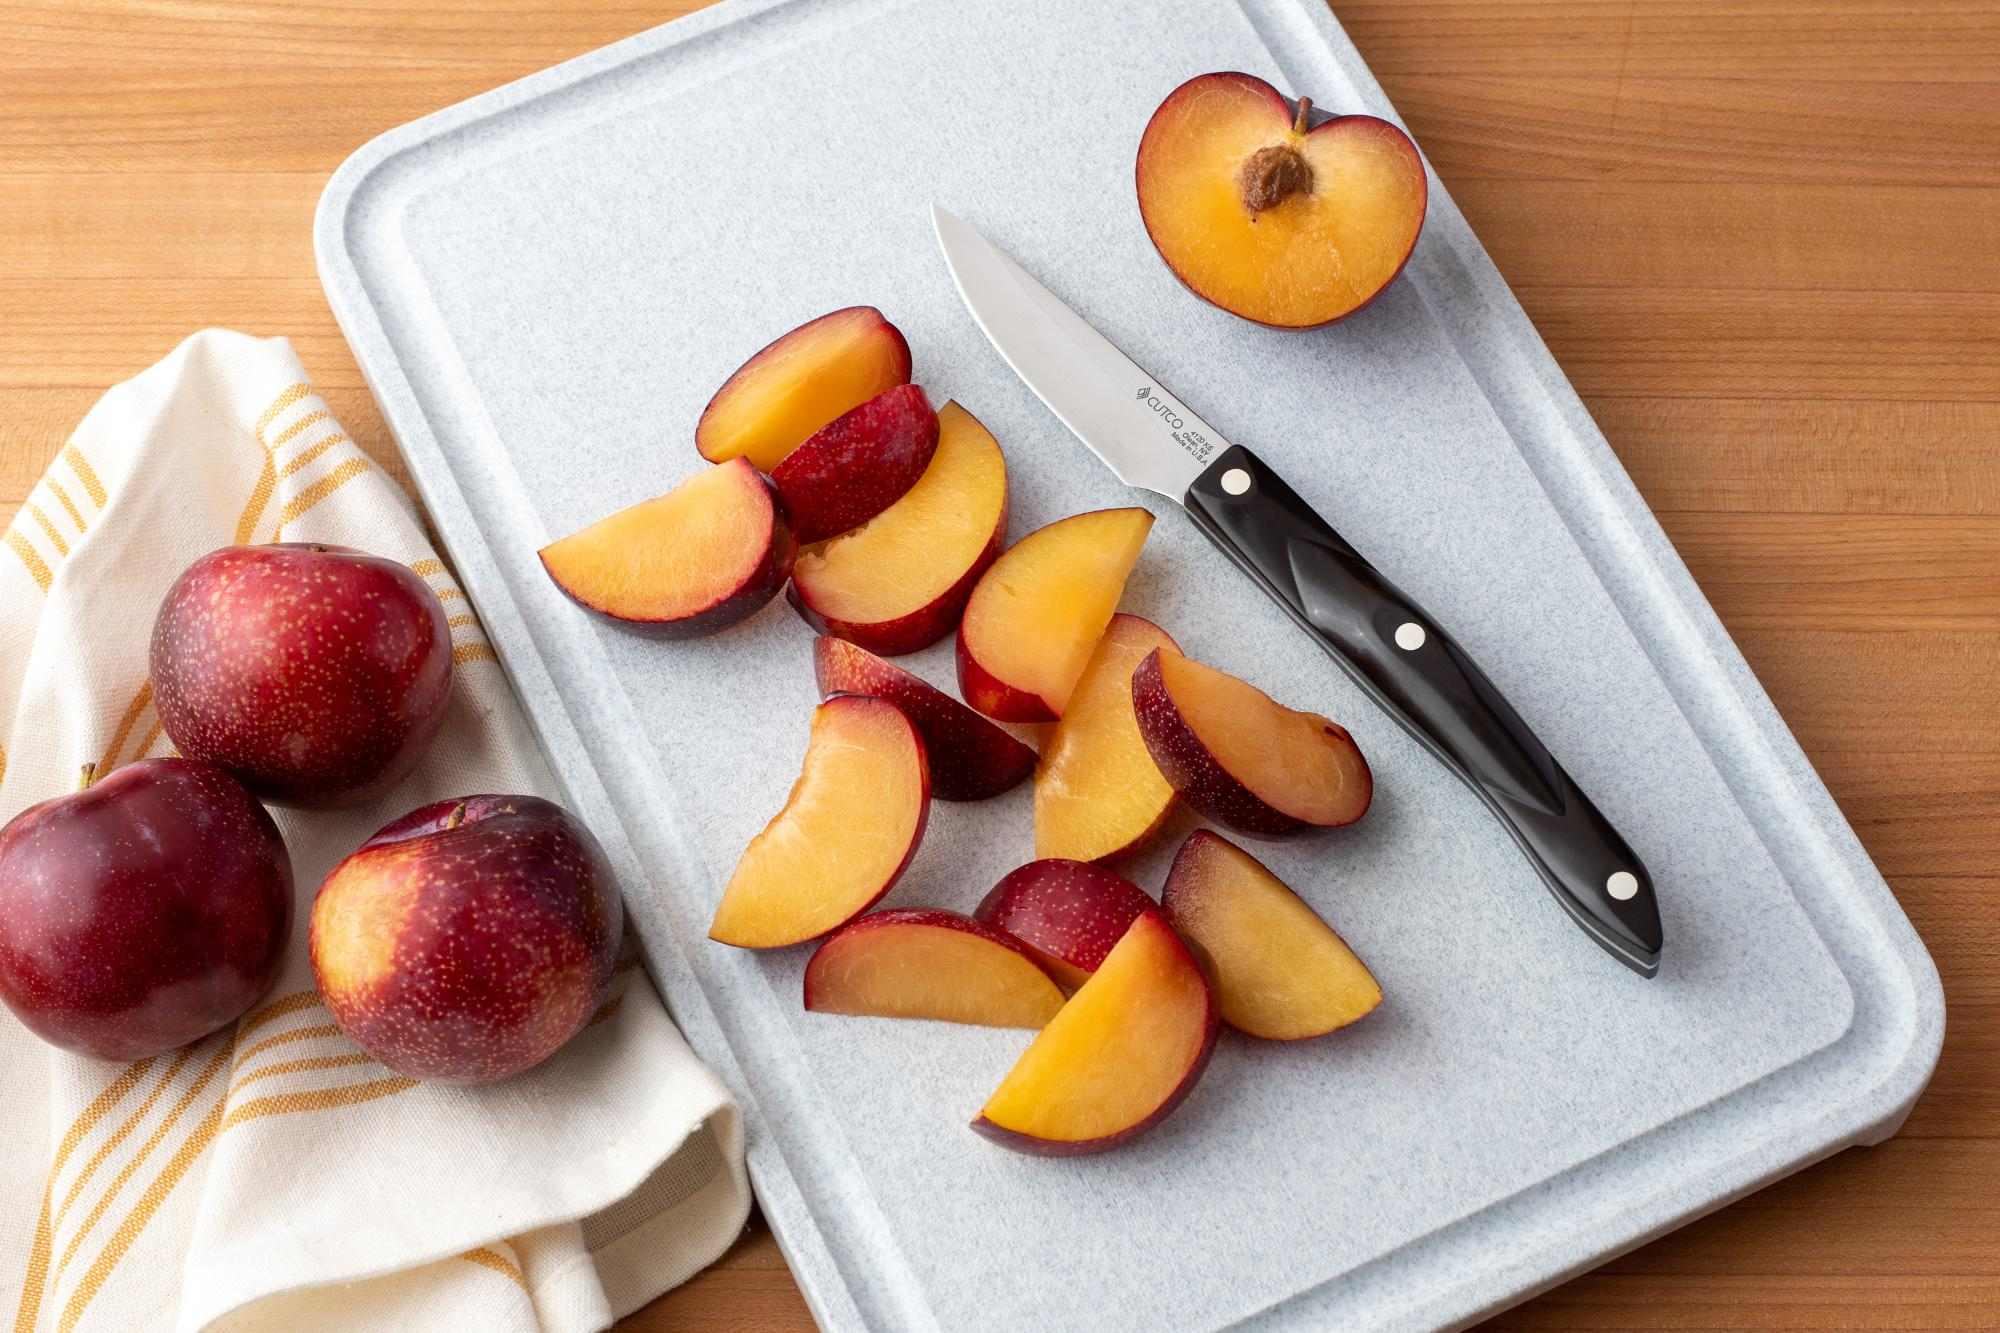 Sliced plums with the Gourmet Paring Knife.